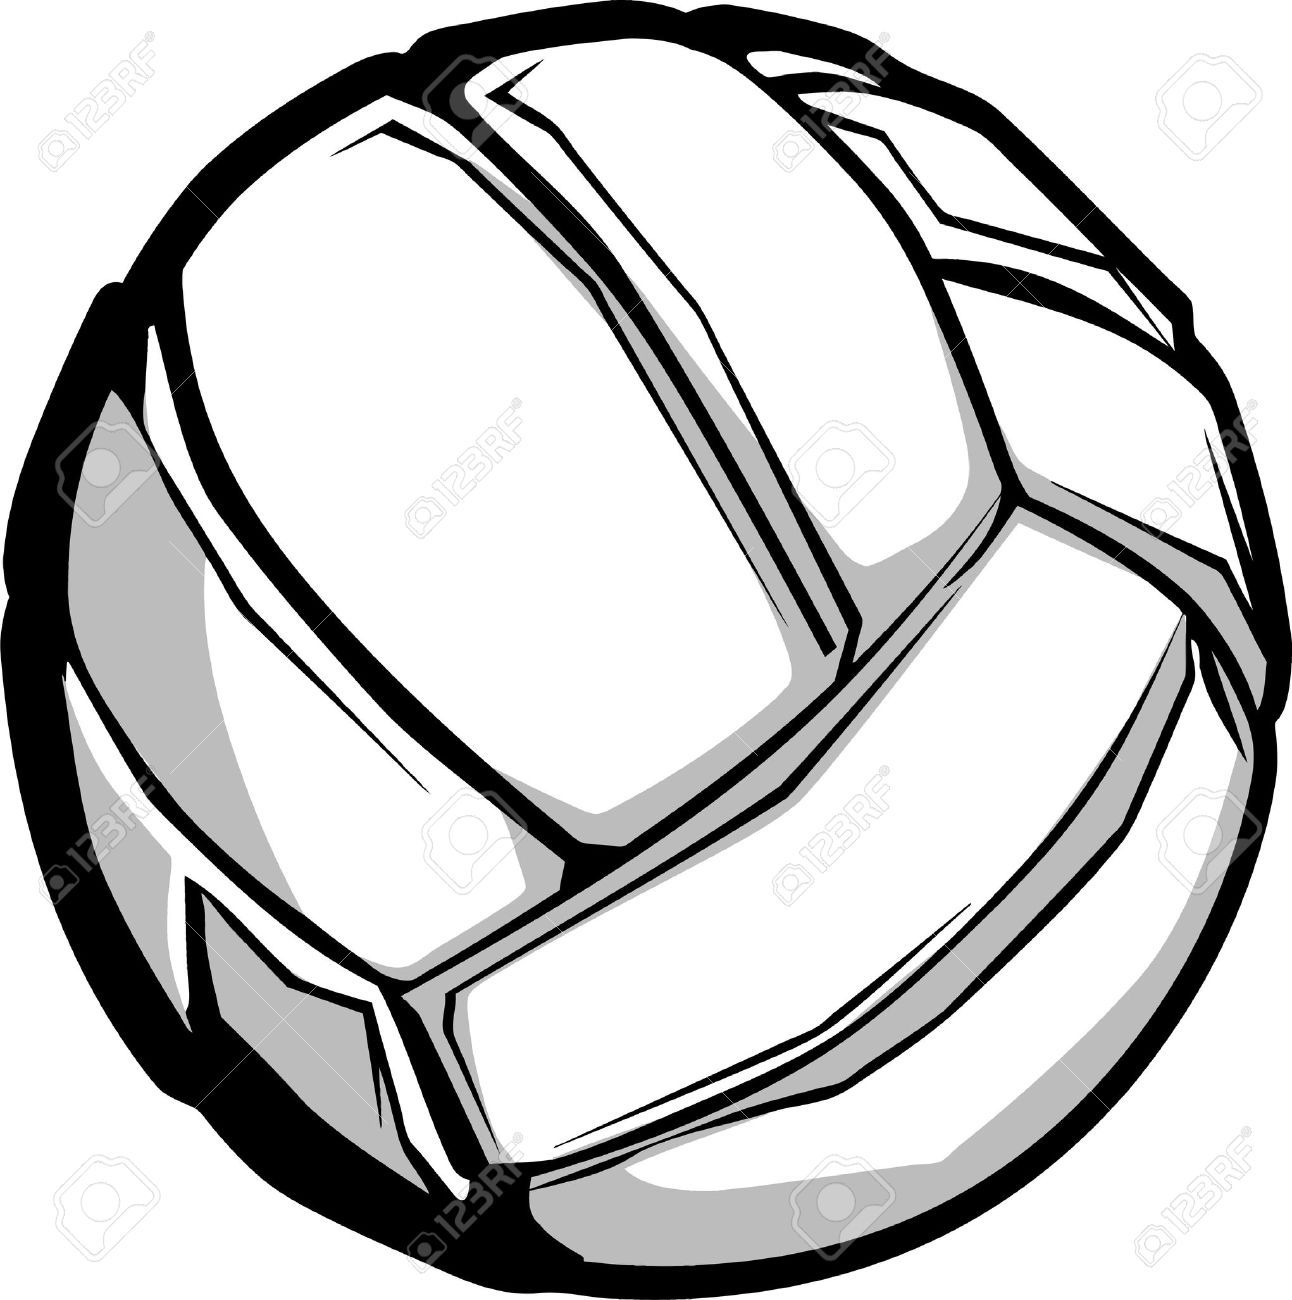 Volleyball Vector Image Volleyball Clipart Volleyball Free Clipart Images